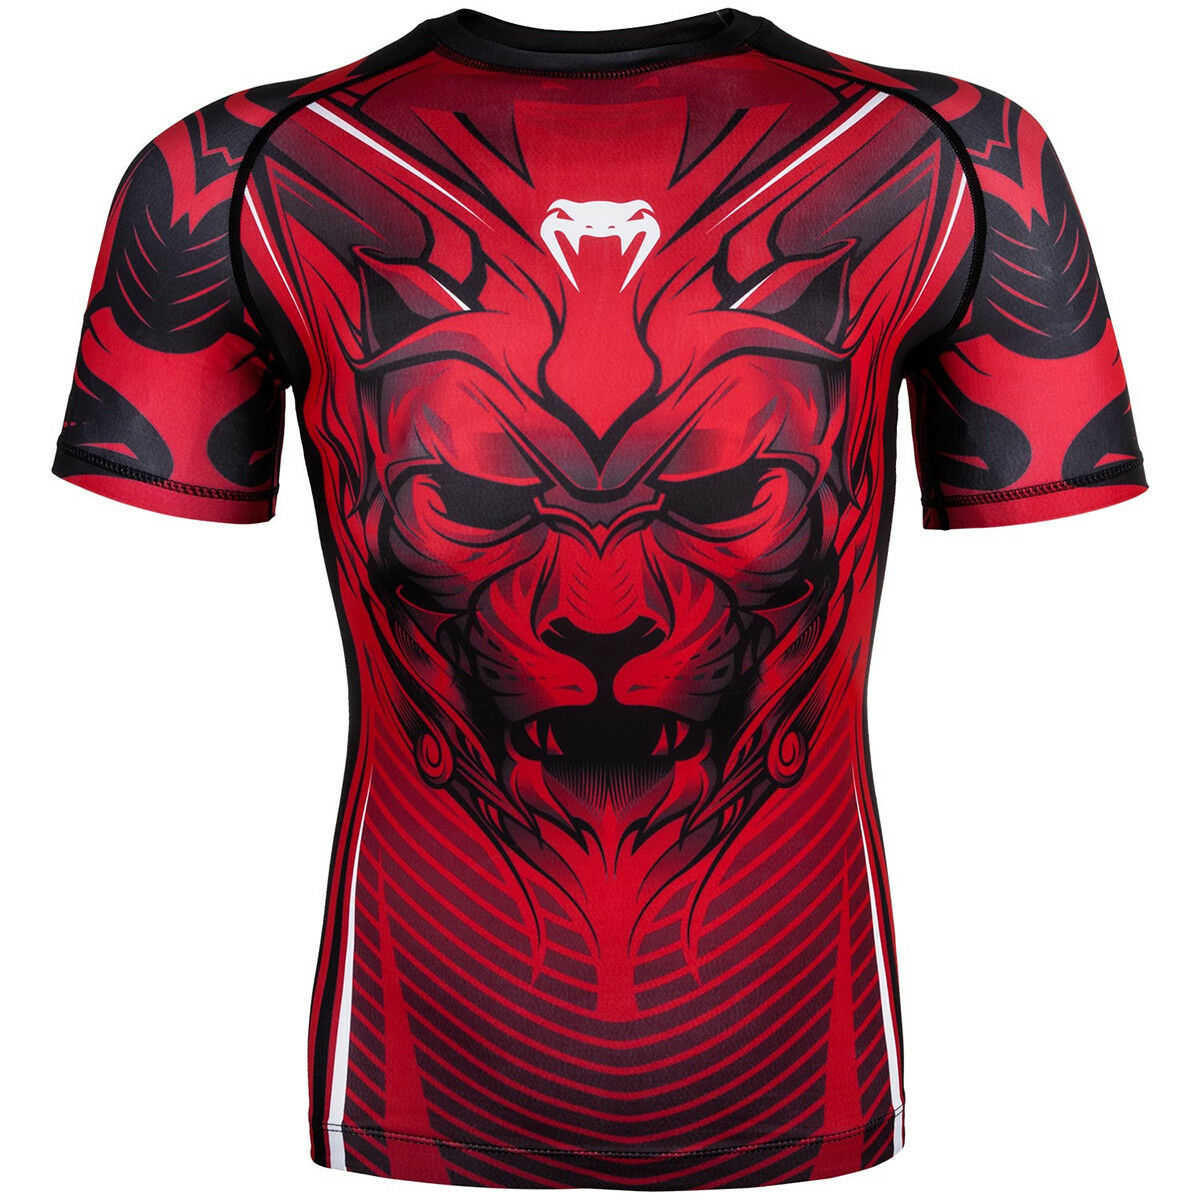 Venum Bloody Roar Dry Tech Short Sleeve MMA Rashguard - ROT